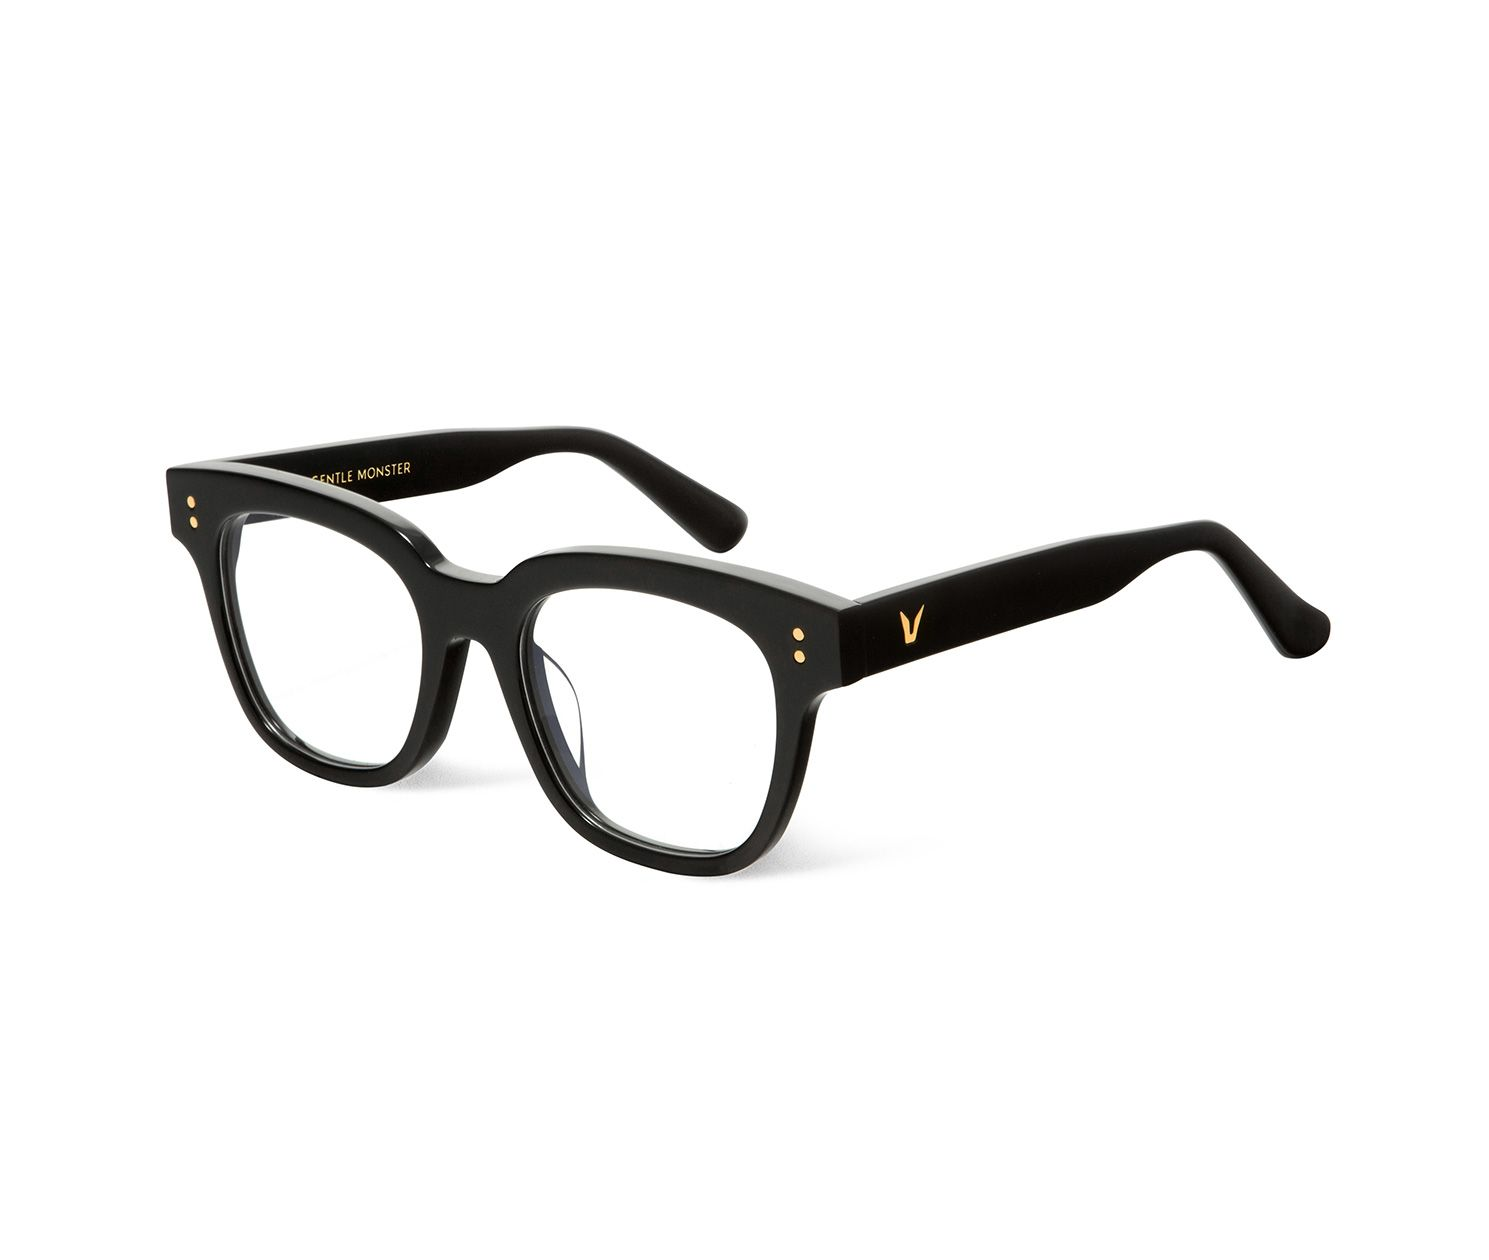 d71f8cef6b8a GENTLE MONSTER - wild wild 2 01 - black bold square plastic frames ...